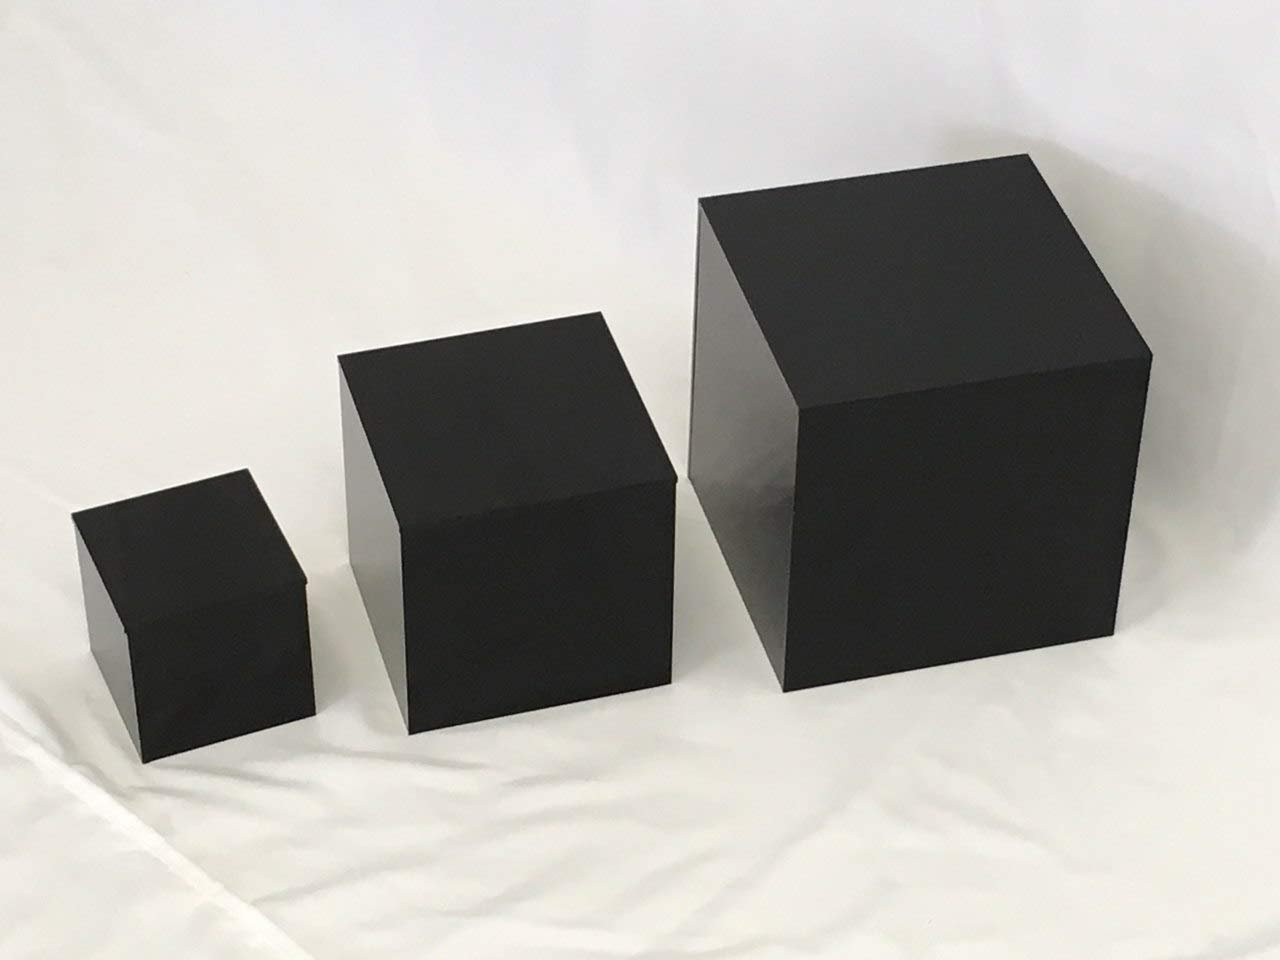 Clear Stands Economy Cubes - Black Square Cube 4 inch, case of 8